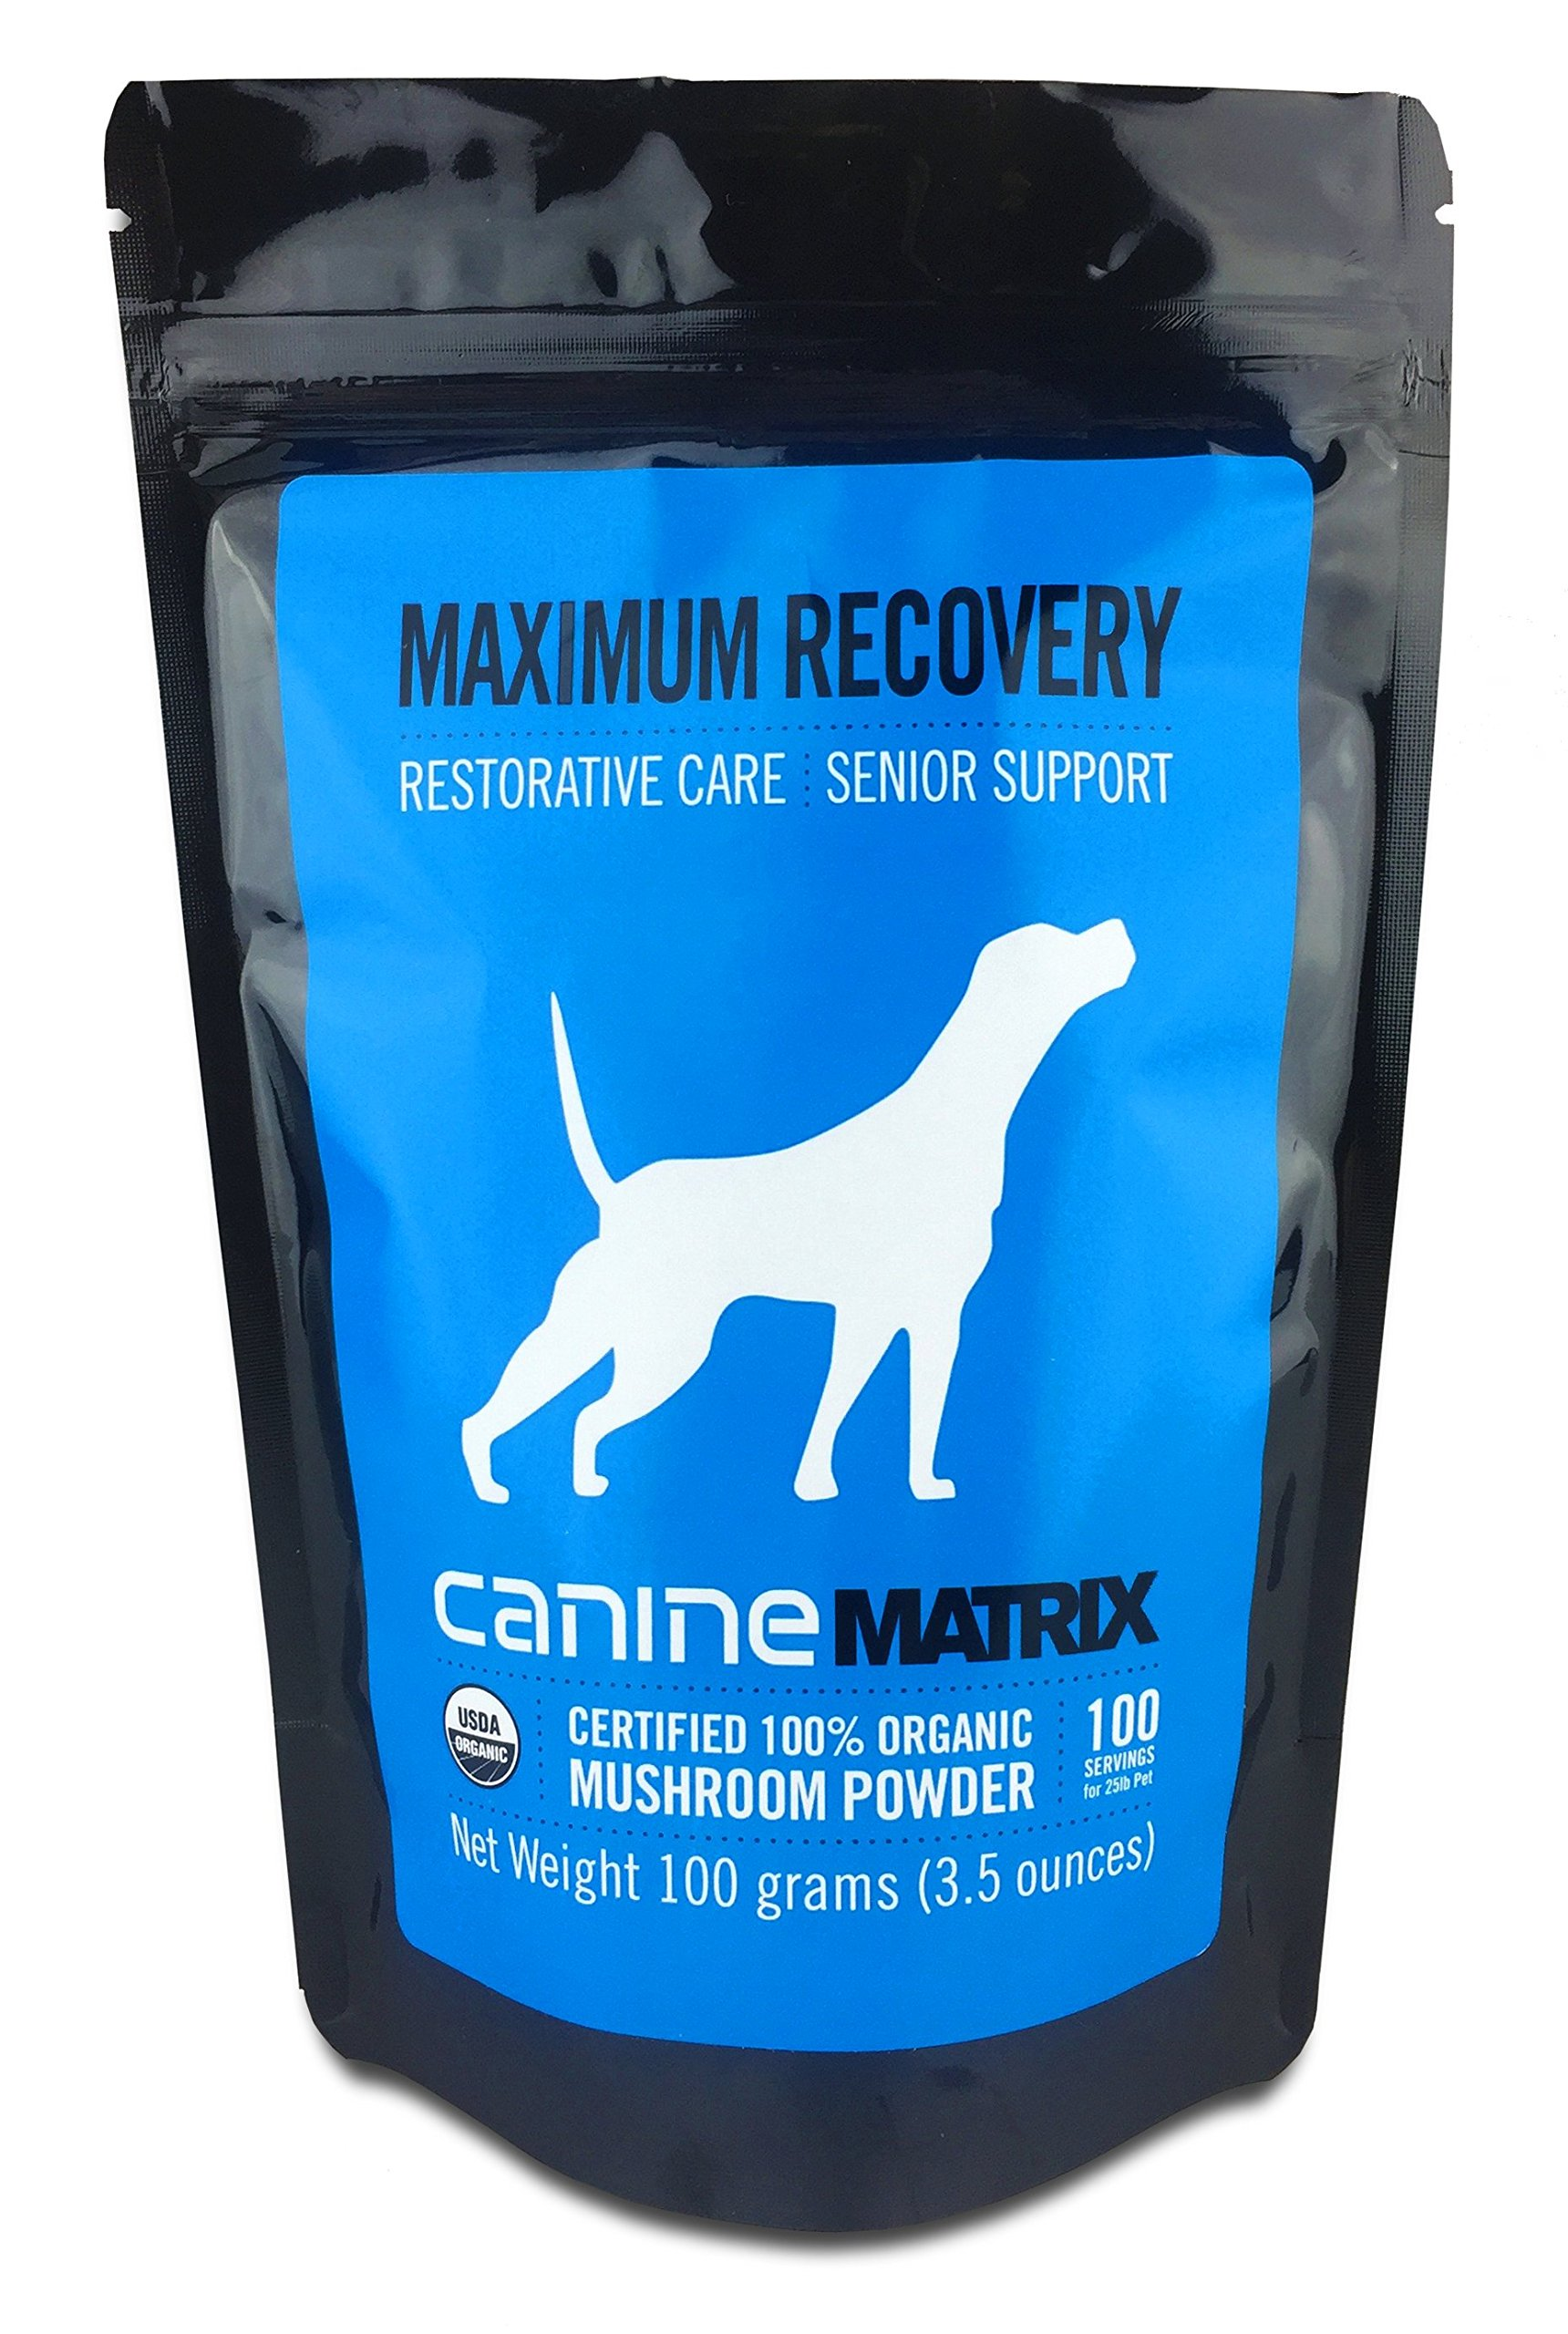 Canine Matrix Organic Mushroom Supplement for Dogs and Cats, Maximum Recovery: Restorative Care, Senior Support, 100 Servings, 3.5oz, 100 Grams